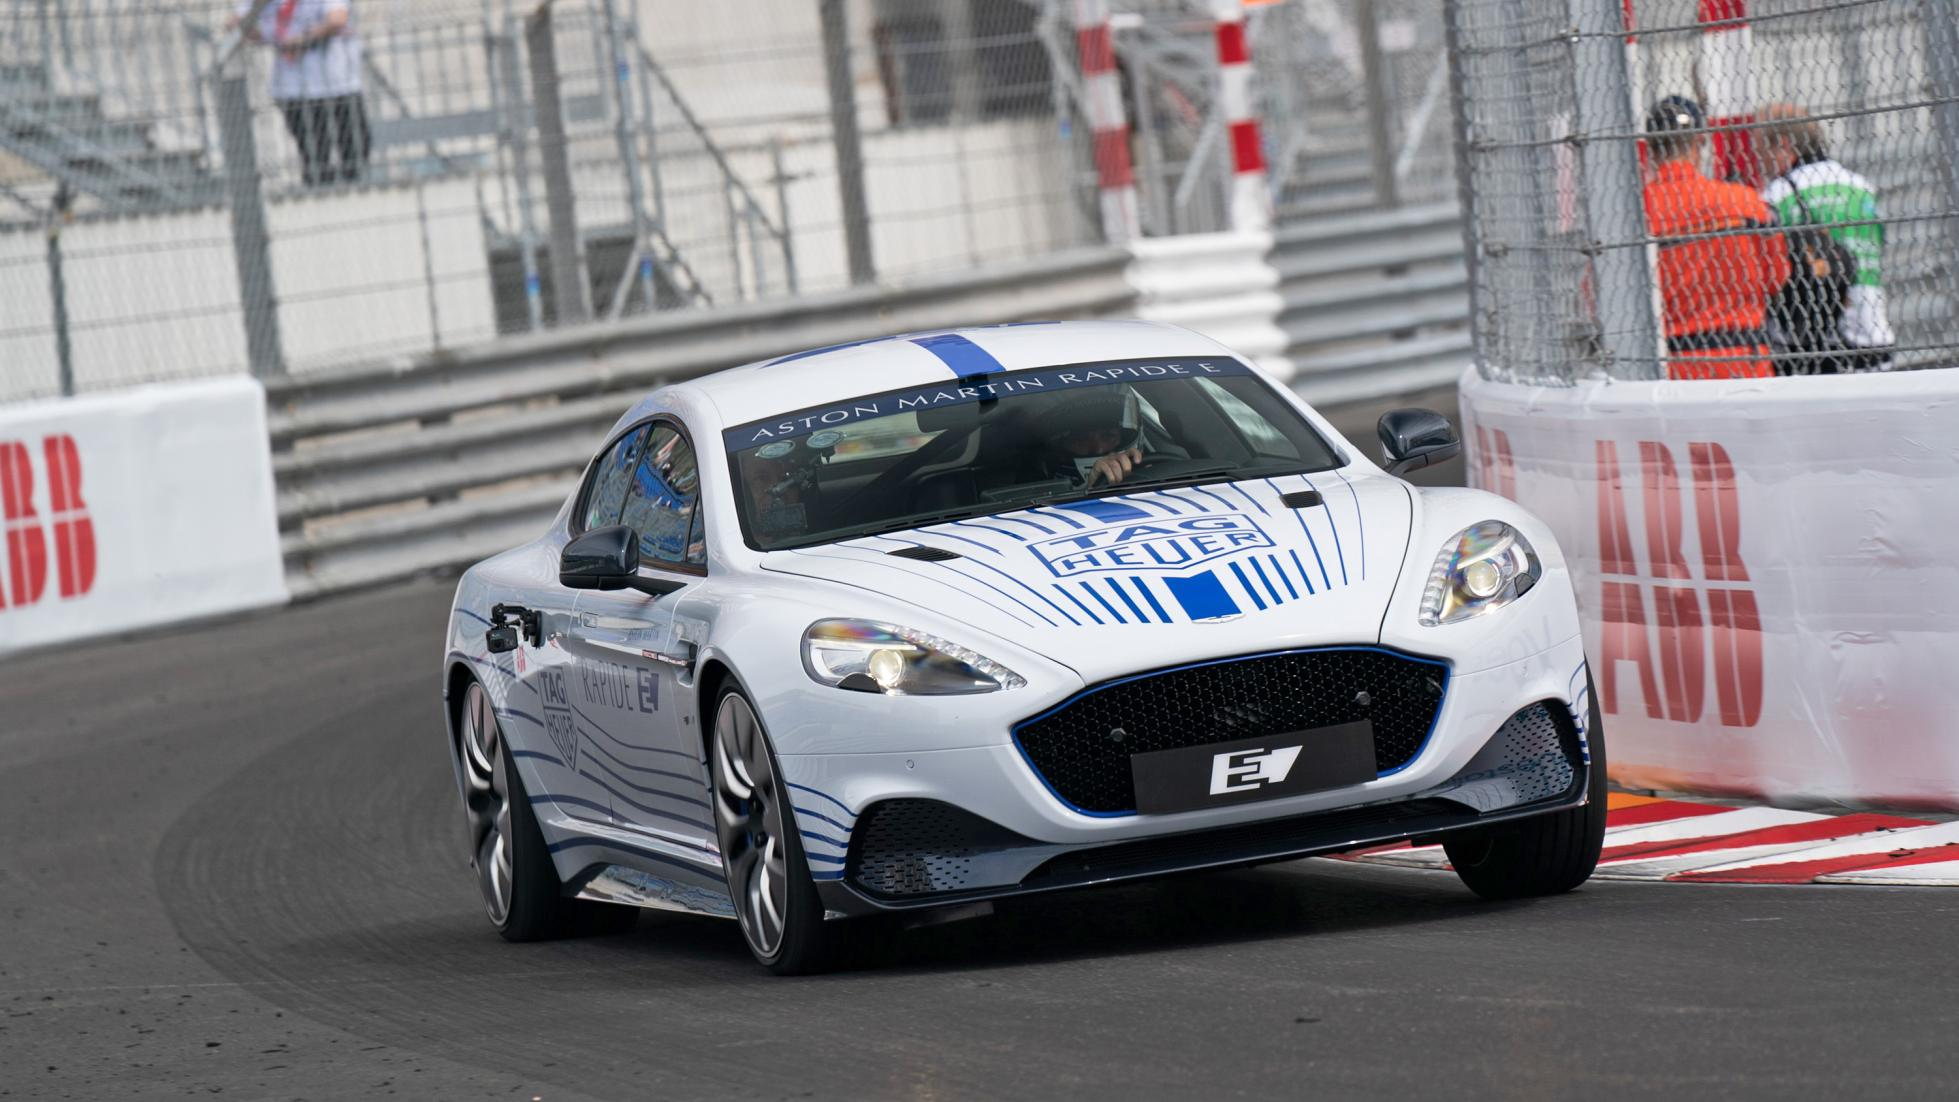 The all-electric Aston Martin Rapide E supercar, which originally debuted at the 2019 Auto Shanghai show in China, now completed a demo lap before the Formula E Gran Prix in Monaco